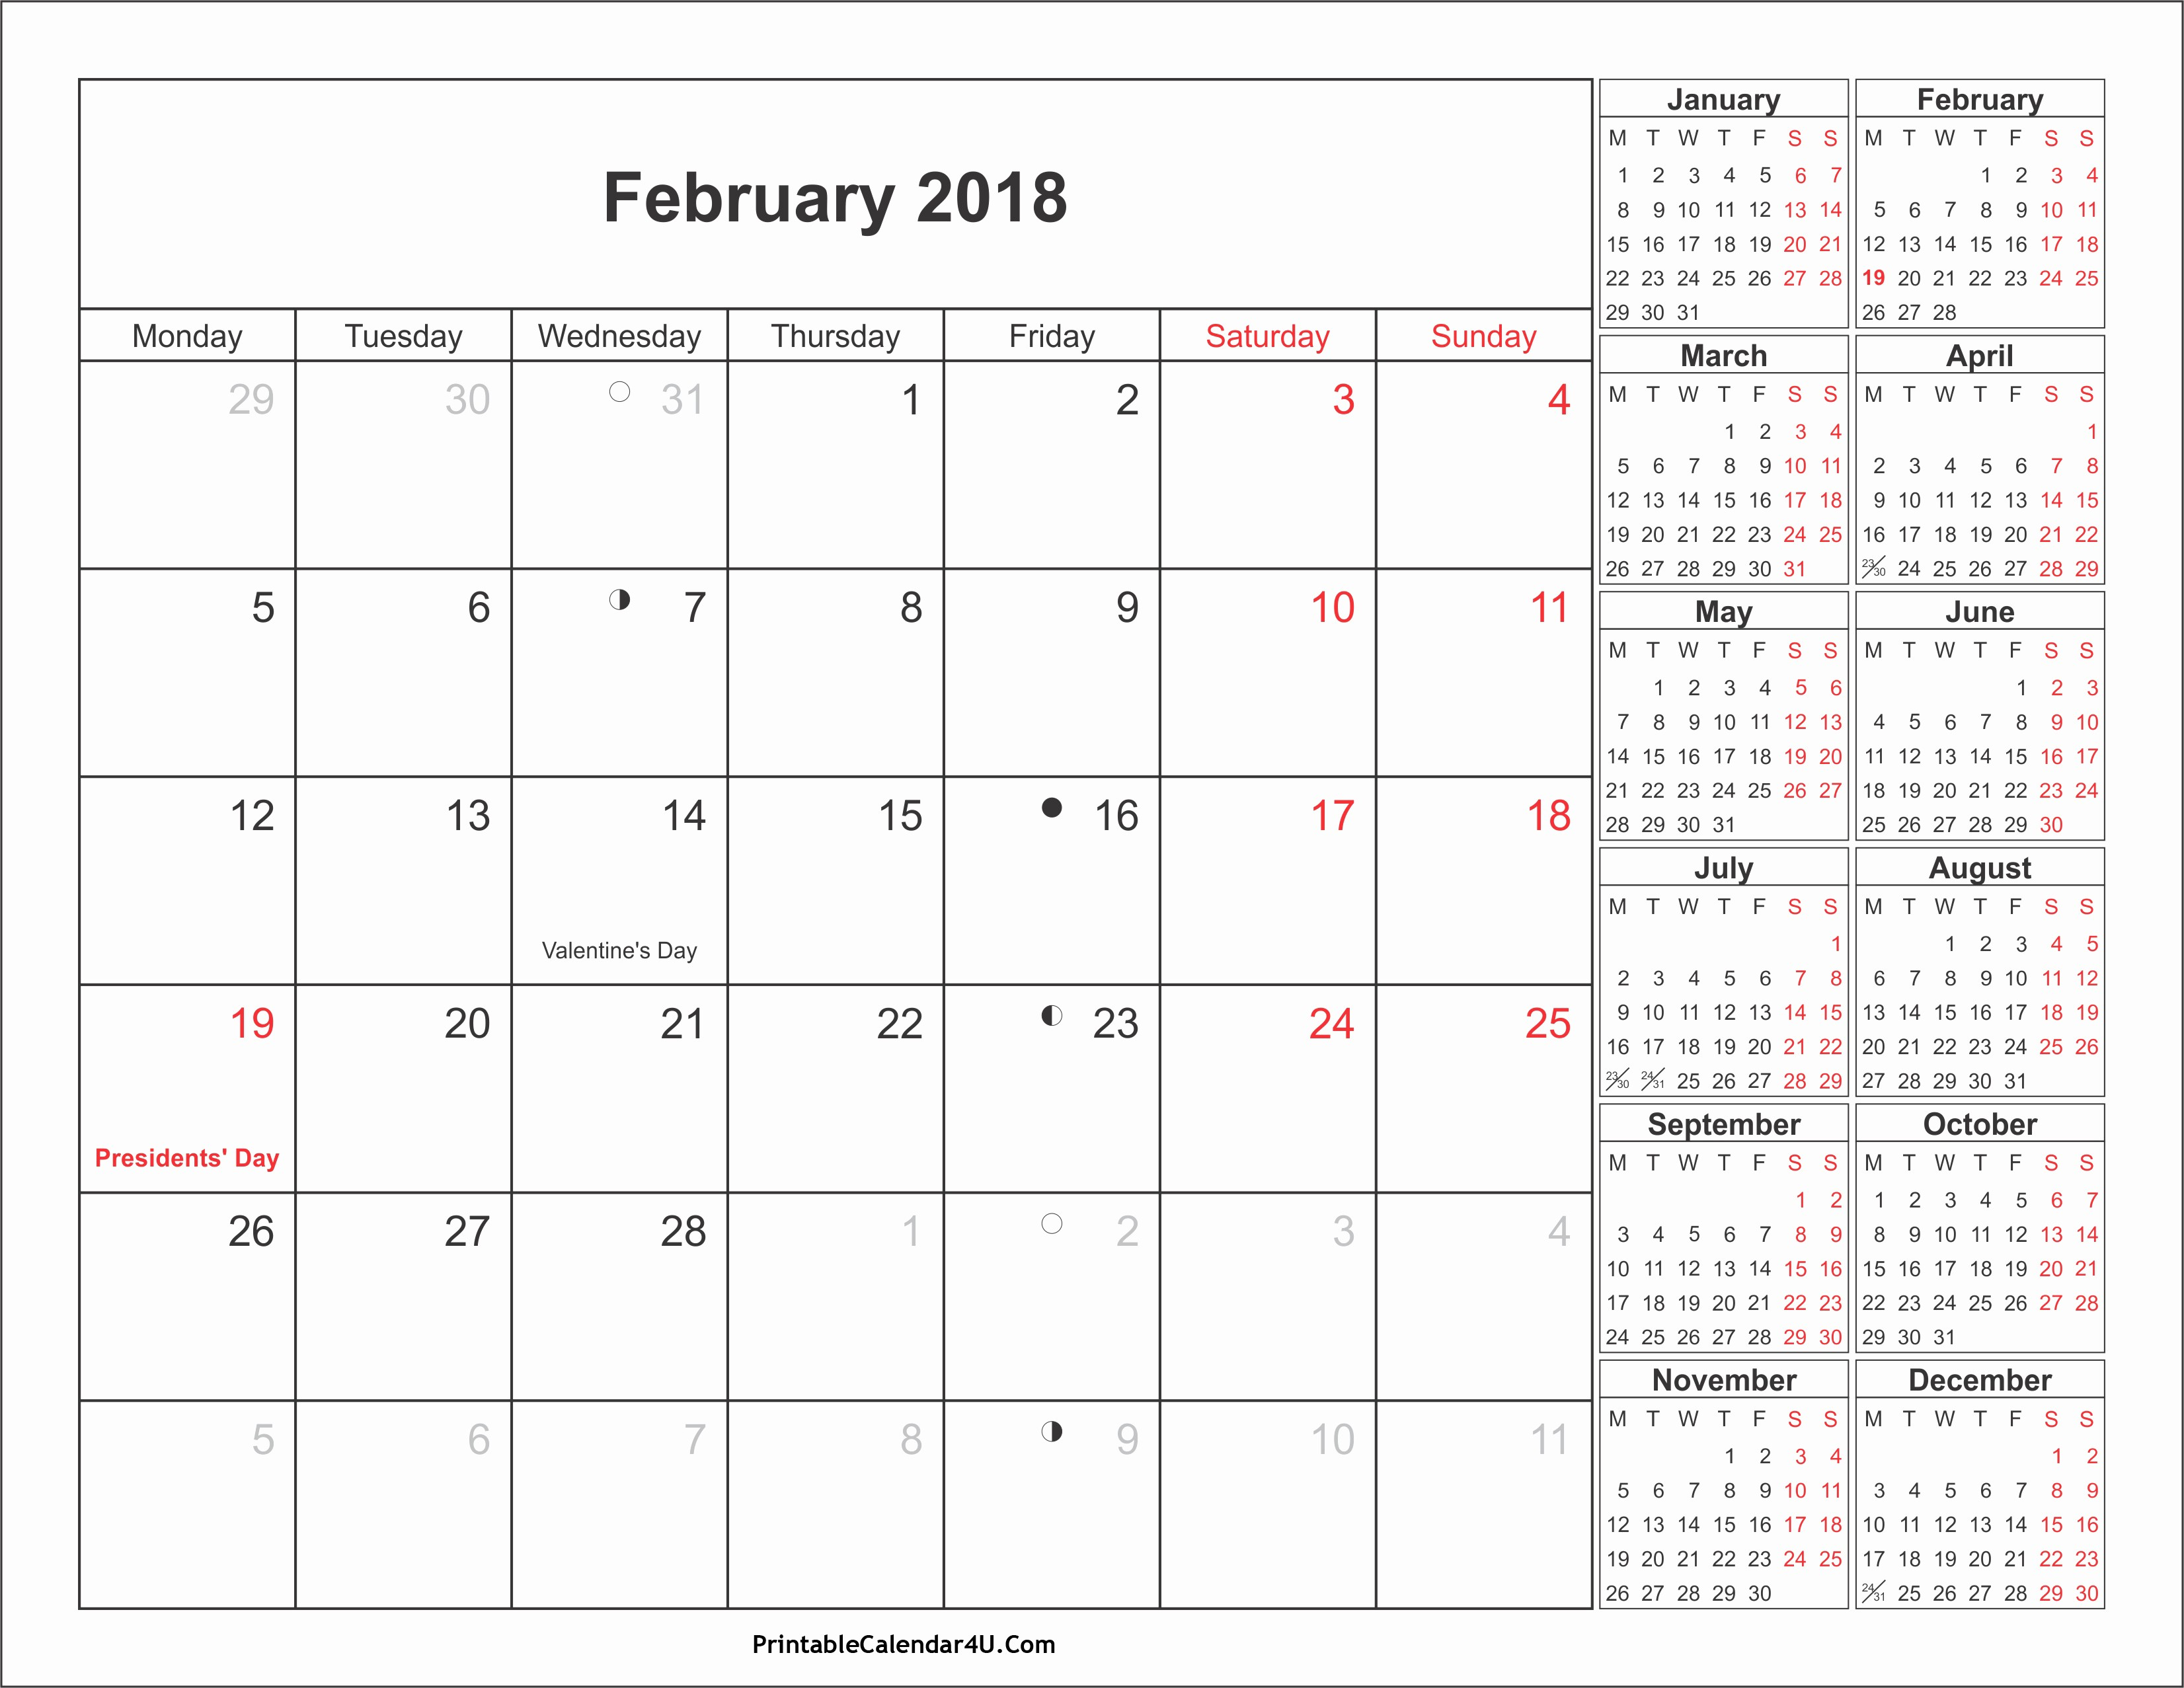 2017-2018 Printable Calendar Beautiful February 2018 Calendar Printable with Holidays